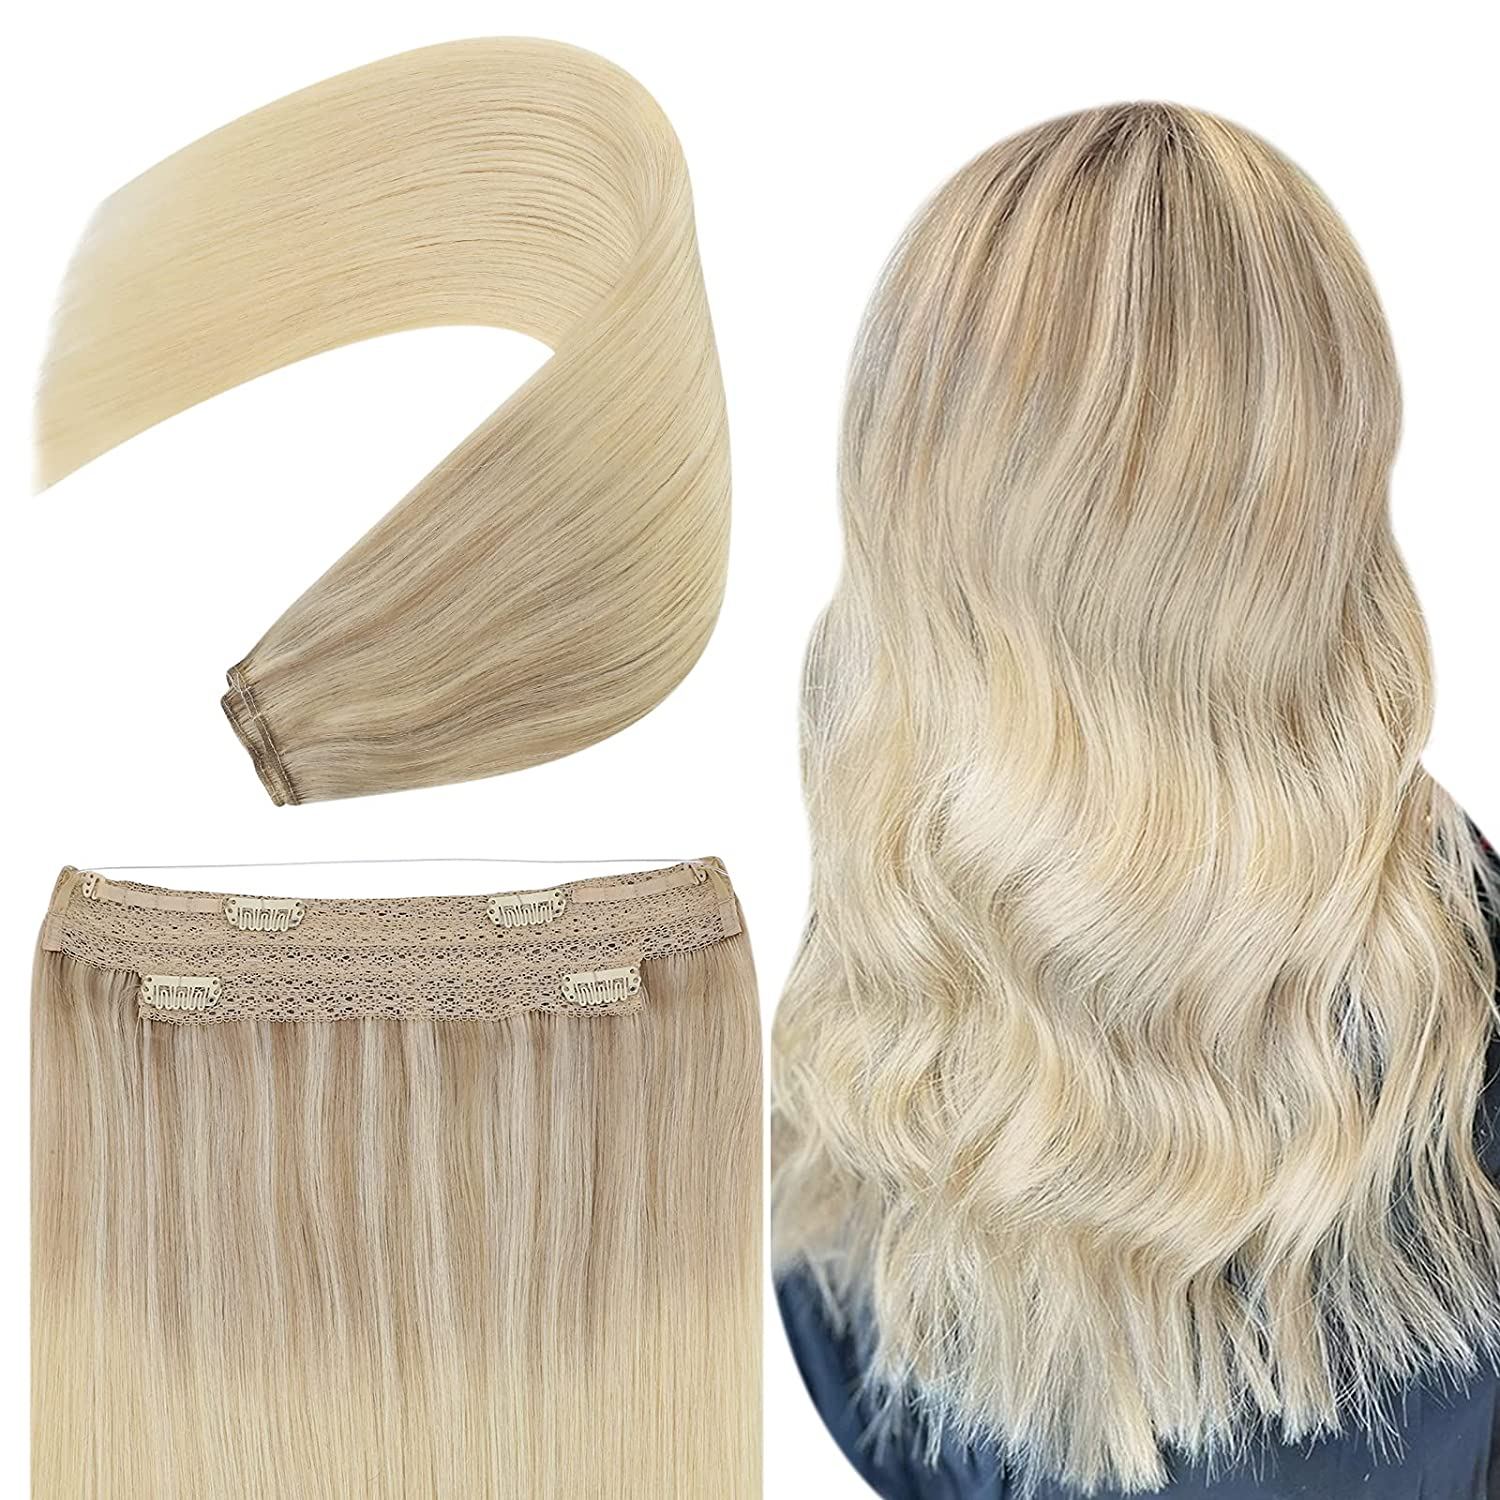 YoungSee New product! New type Blonde Wire Hair 18inch Real Human Import Extensions